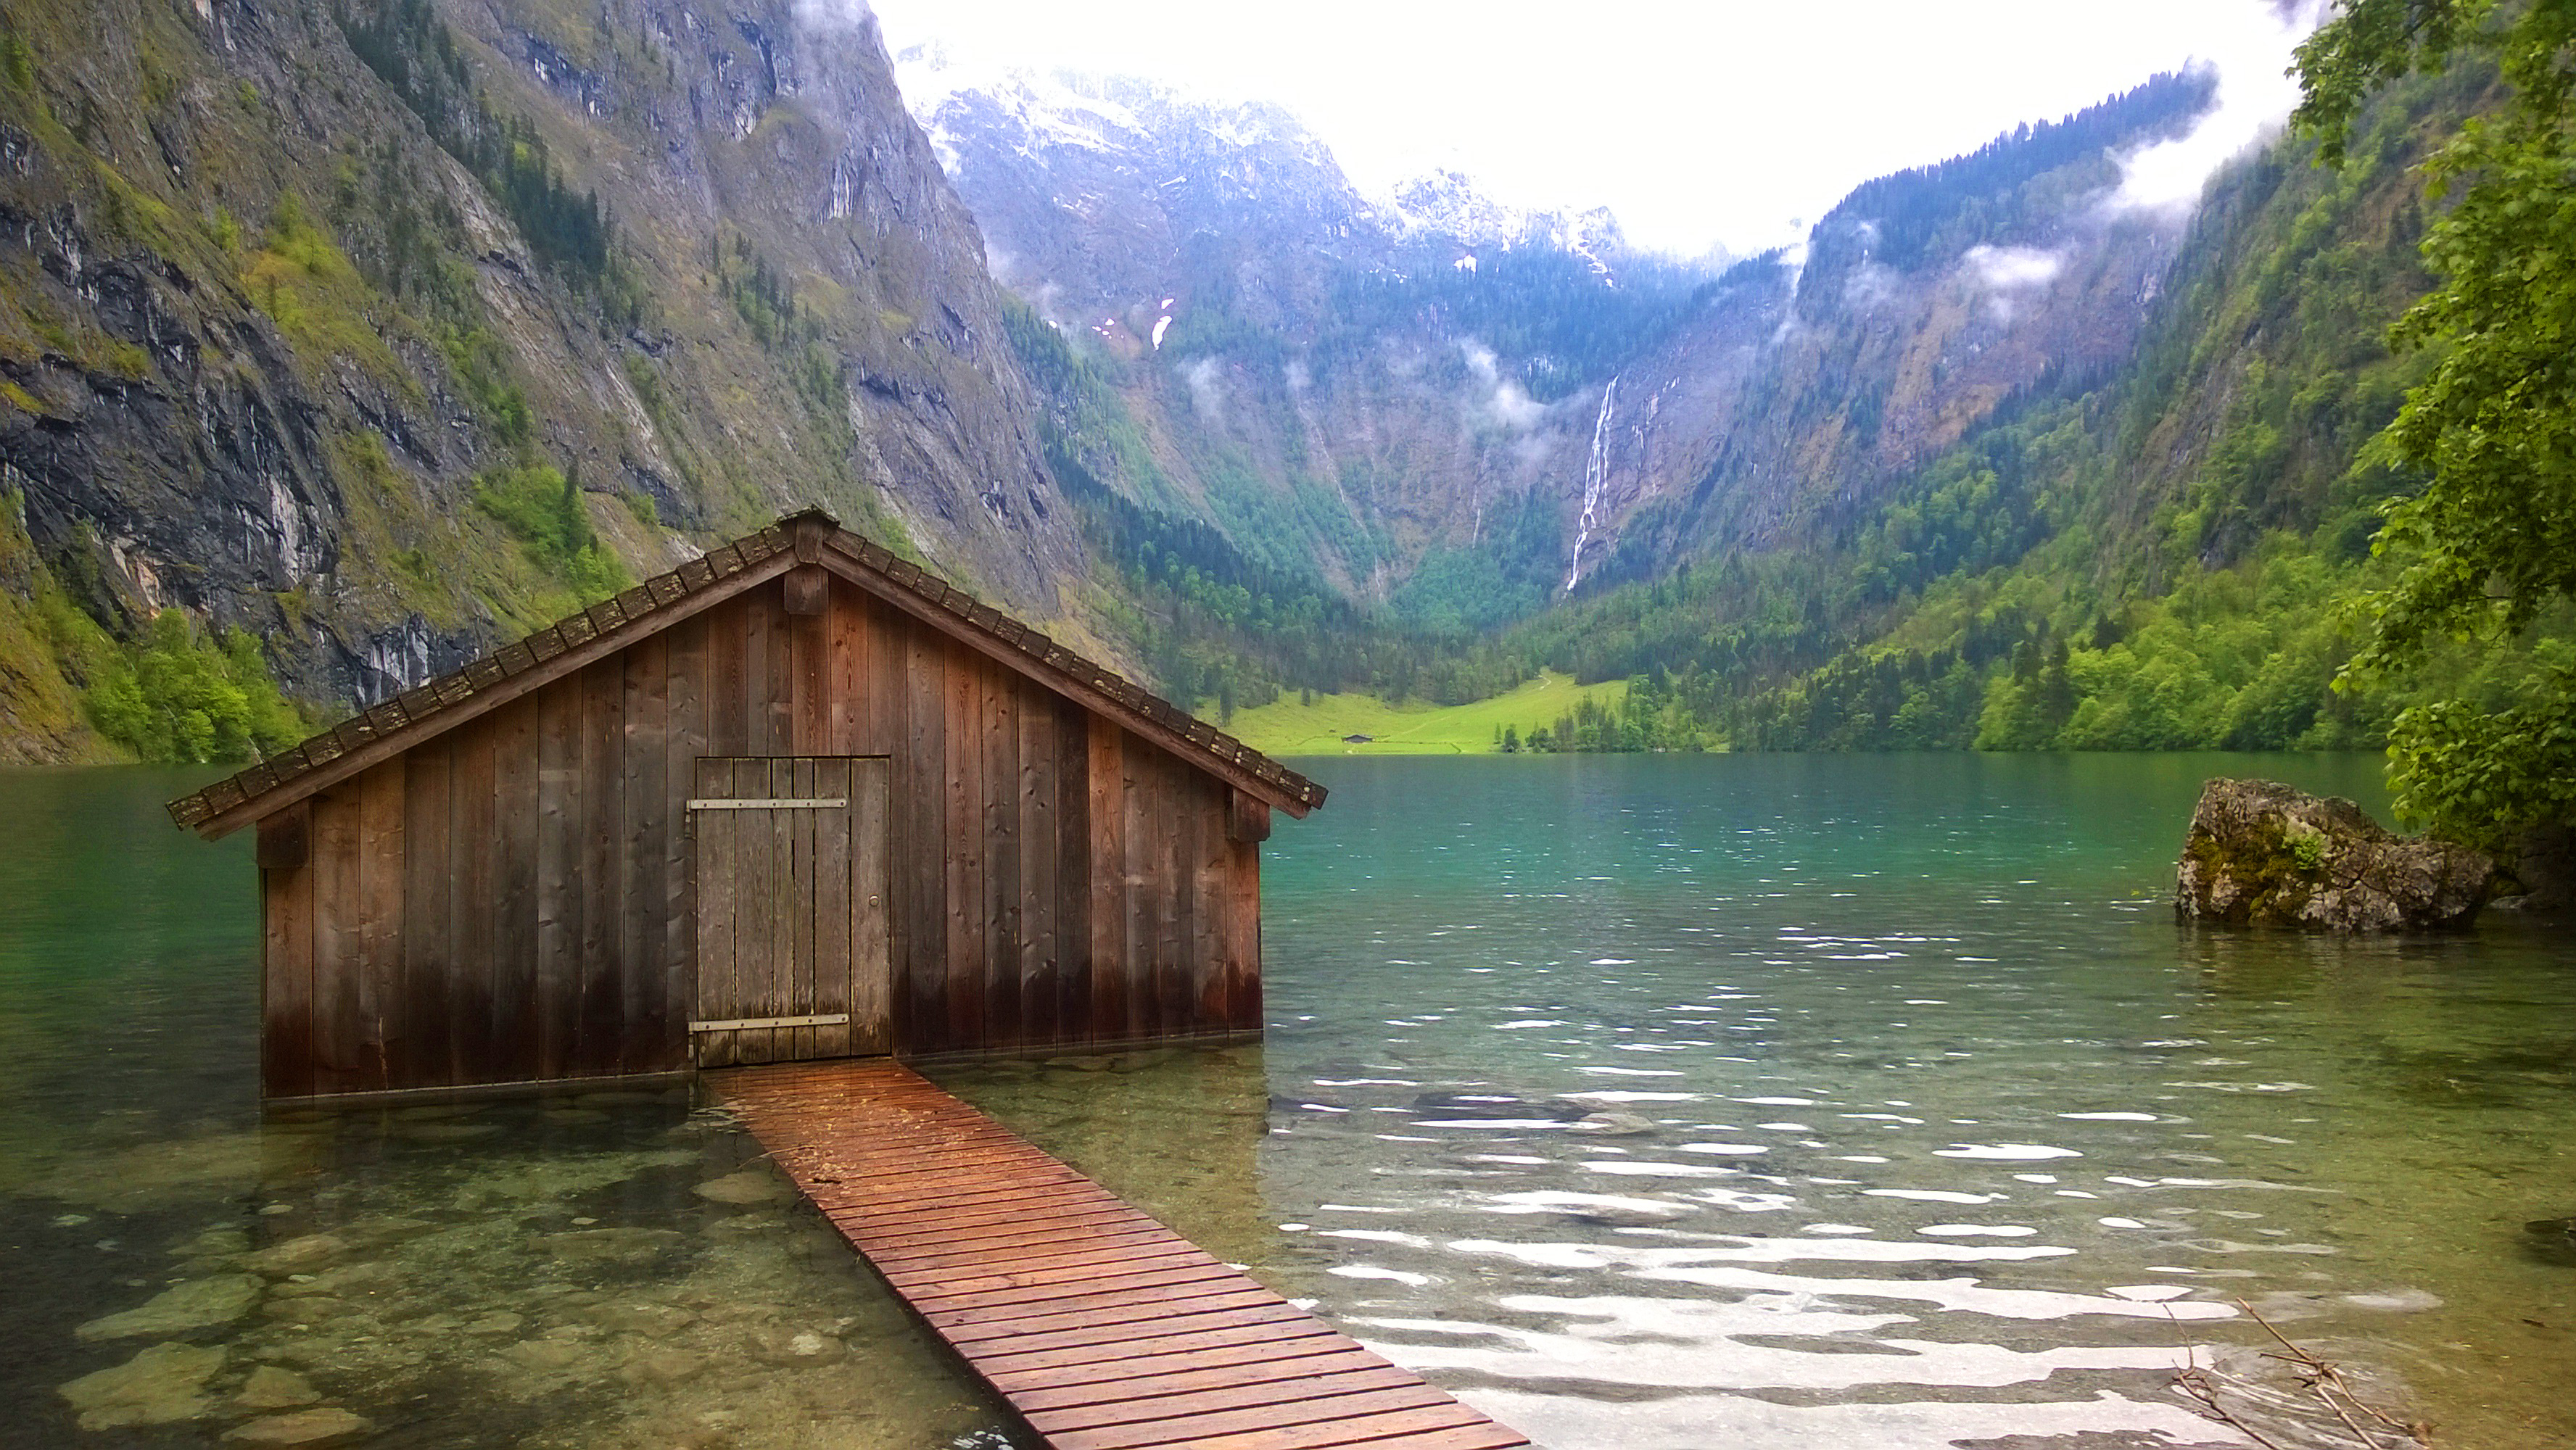 A mountain lake with a boathouse set a few metres into the water.